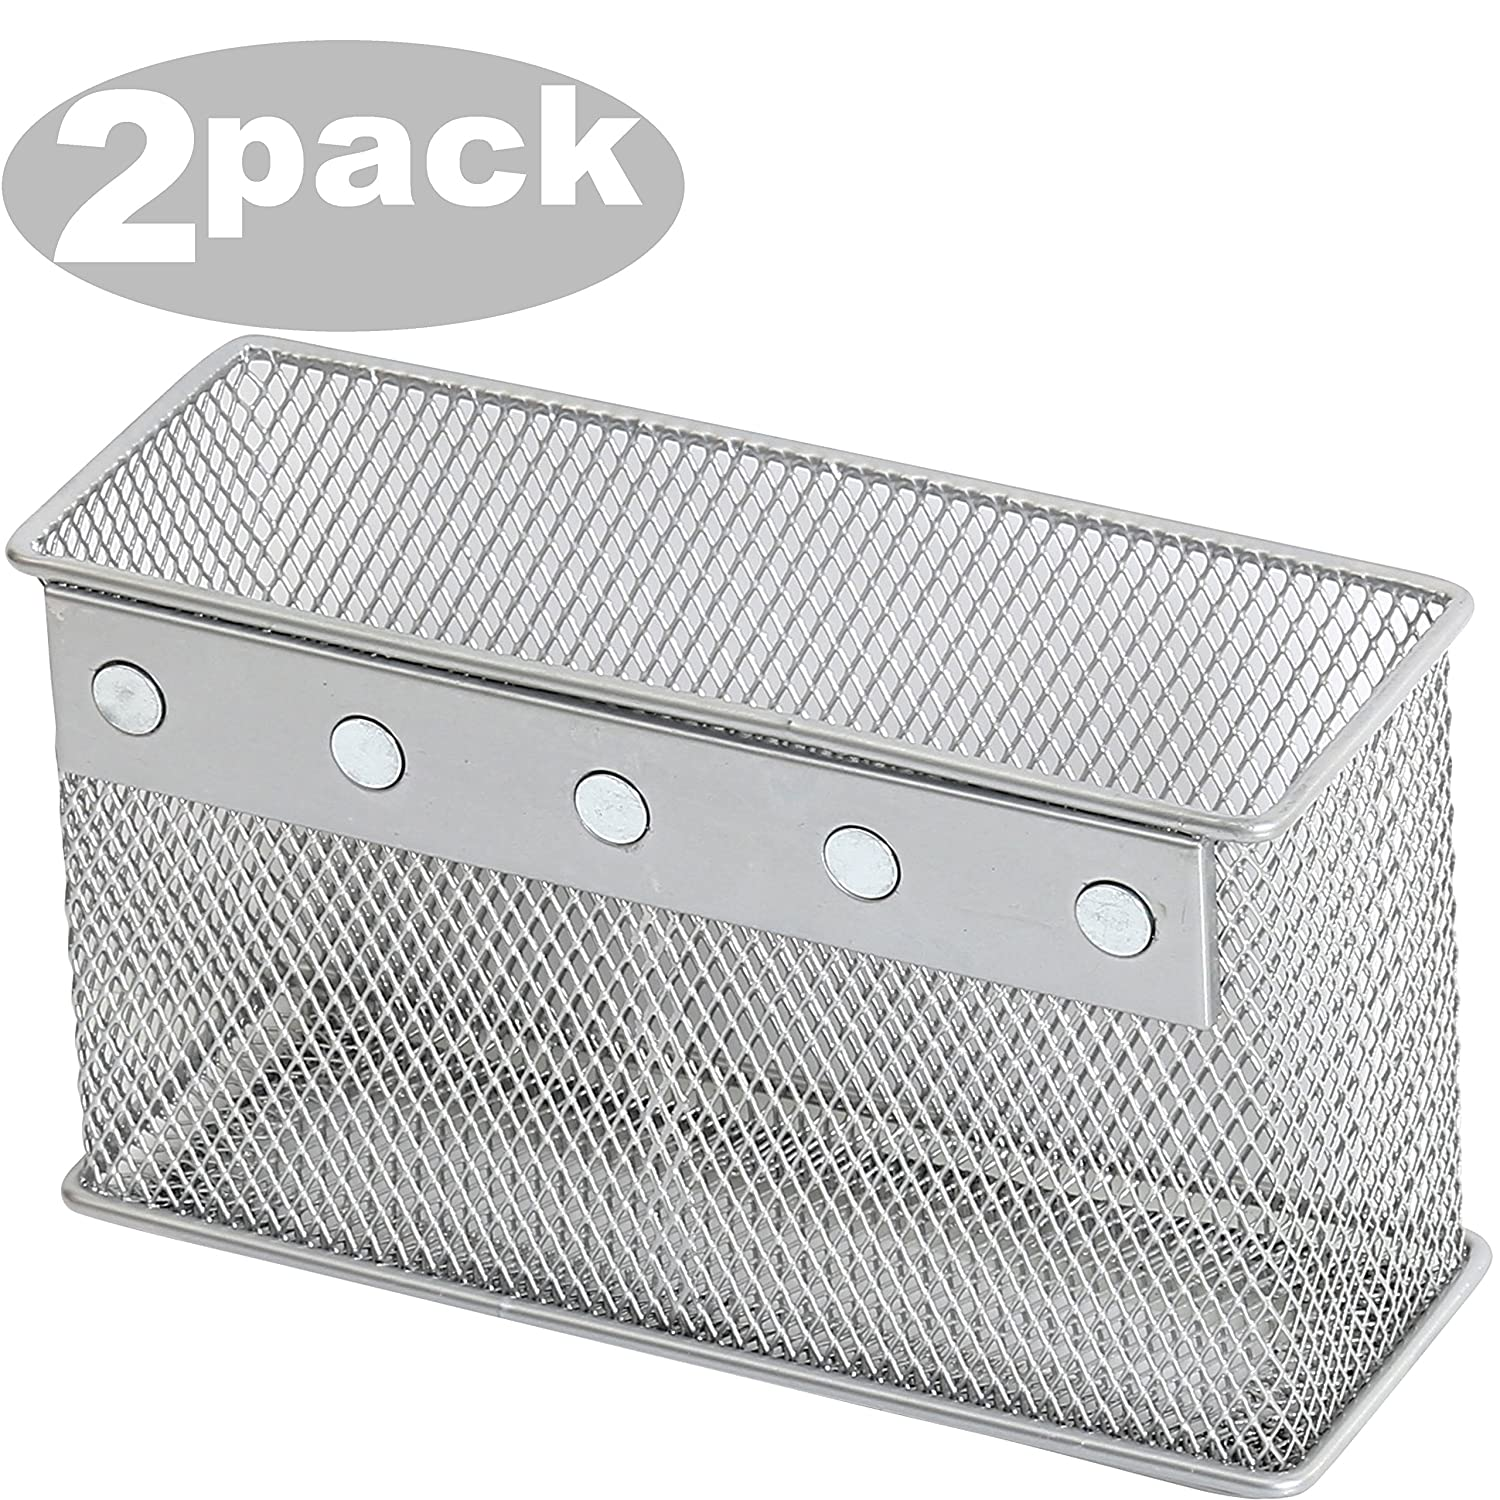 Ybmhome Wire Mesh Magnetic Storage Basket, Container, Desk Tray, Office Supply Accessory Organizer Silver for Refrigerator/Microwave Oven or Magnetic Surface in Kitchen or Office 2305-2(2, Large)